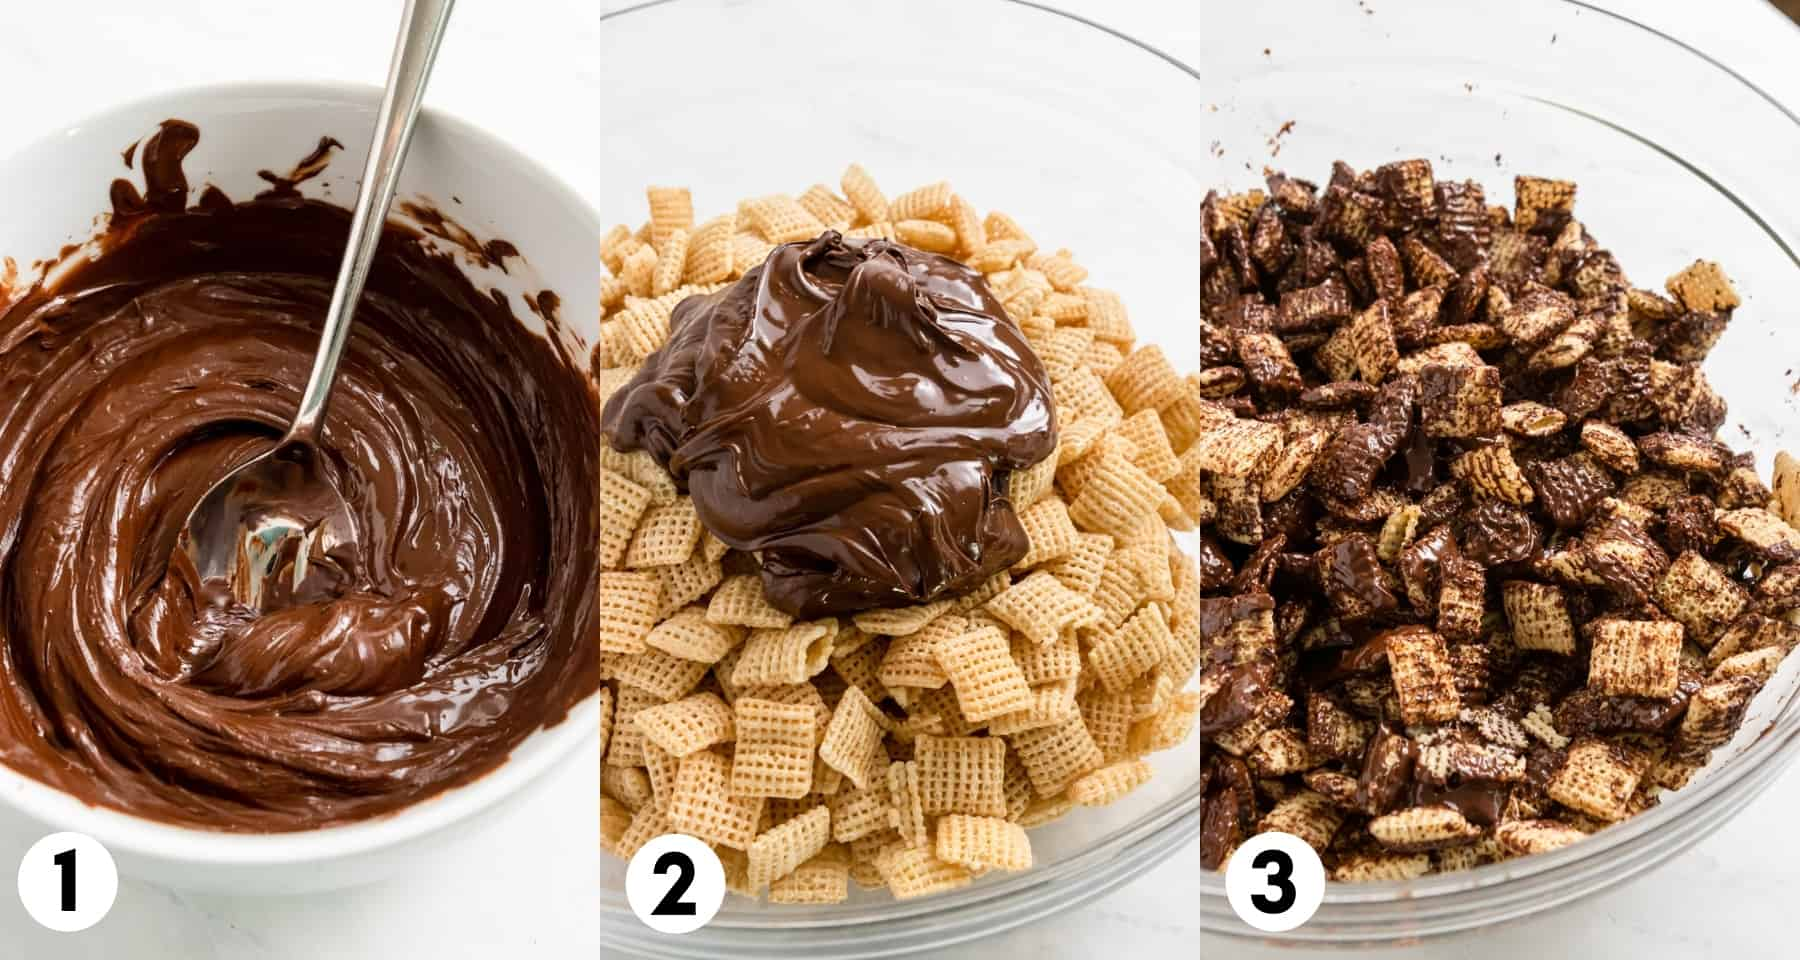 Melted chocolate, Chex in mixing bowl being mixed.